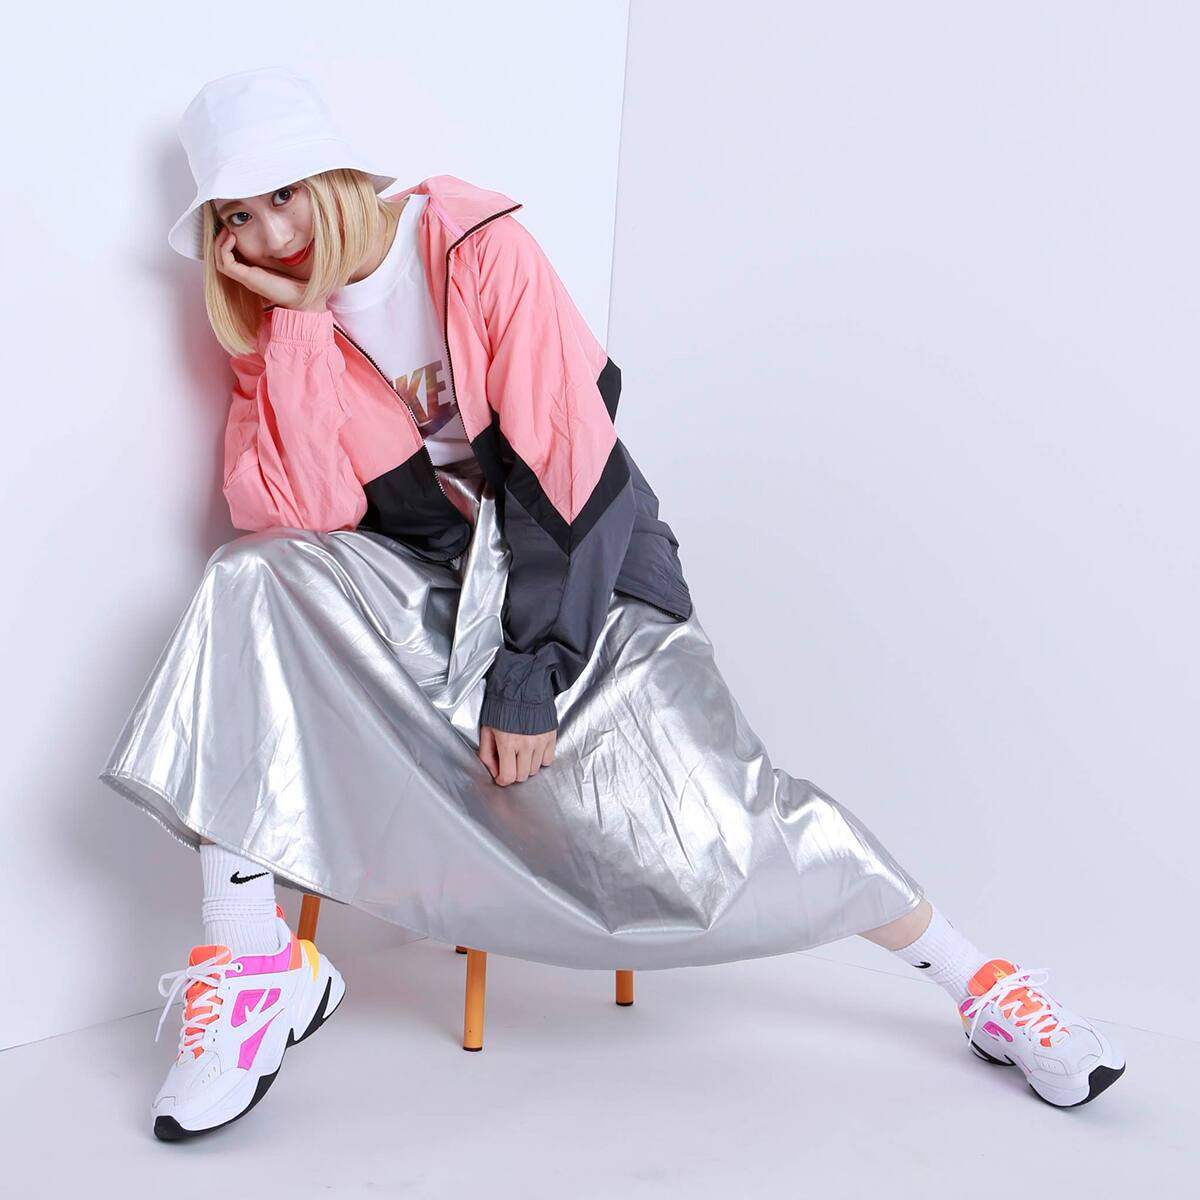 atmos pink シャイニー ロングスカート TX SILVER 19SP-I_photo_large